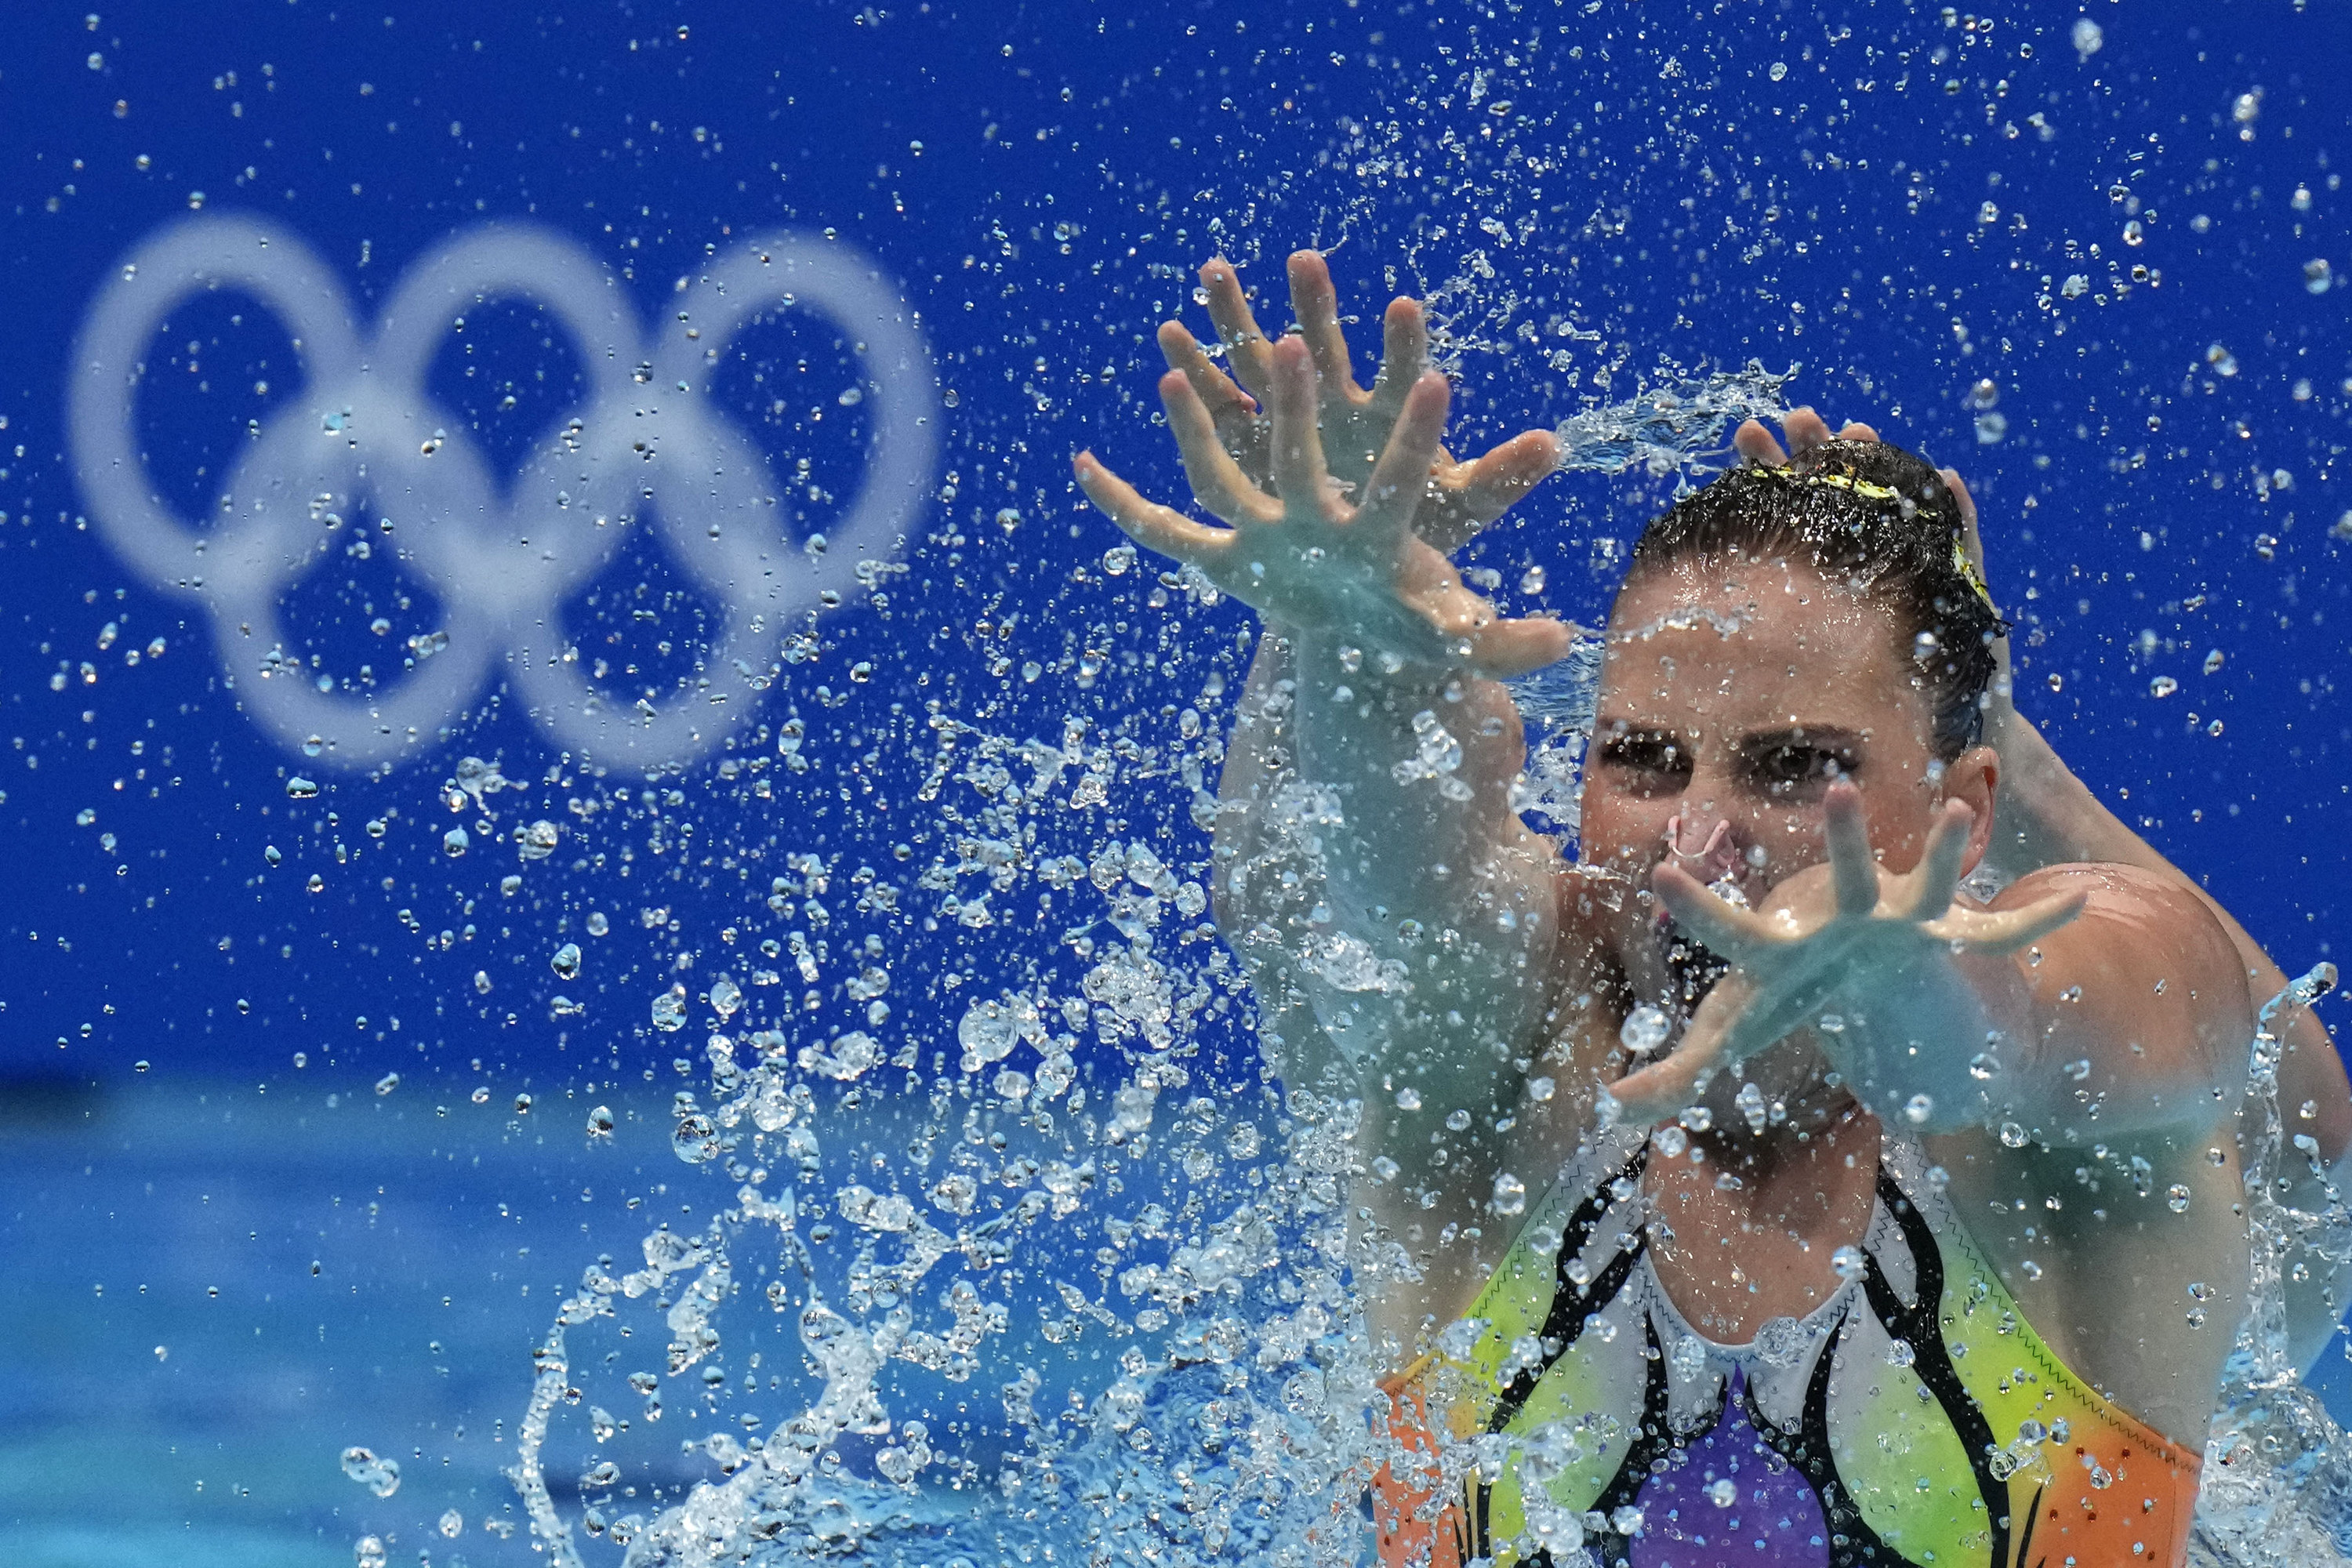 A woman swimmer holds her arms and spread fingers out before her, surrounded by droplets of water